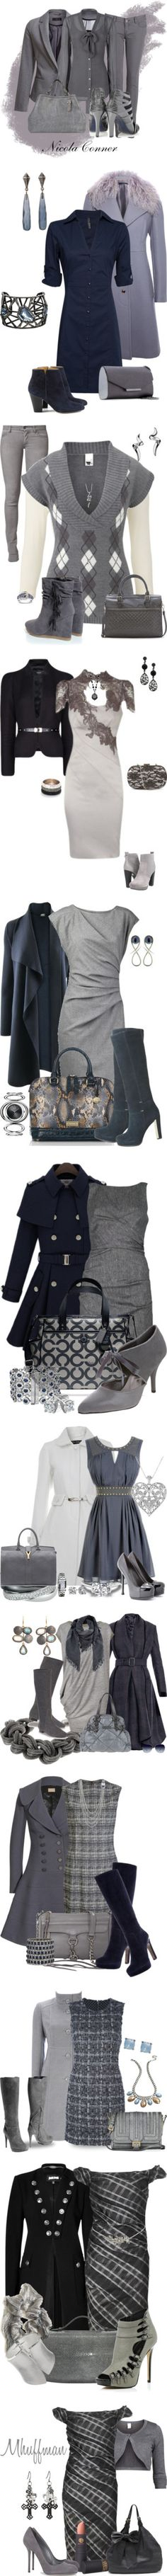 """""""Grey"""" by glinwen ❤ liked on Polyvore"""